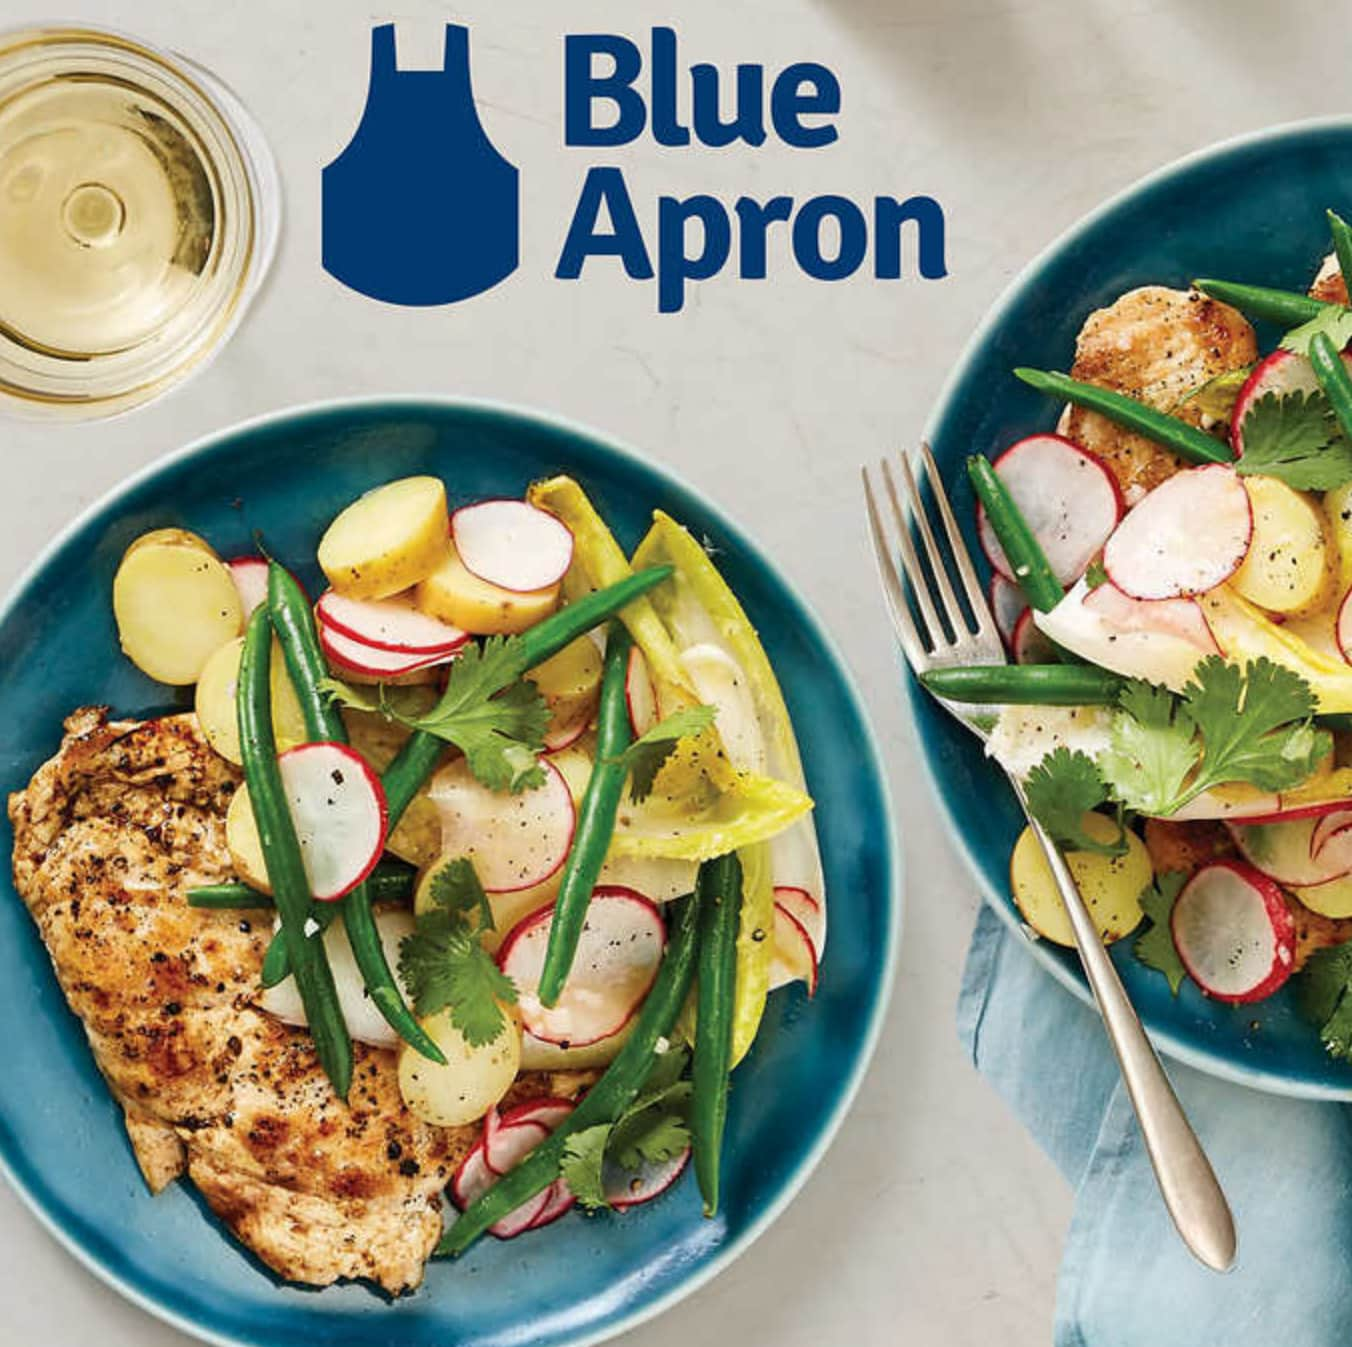 Blue Apron Meal Kits Flash Sale